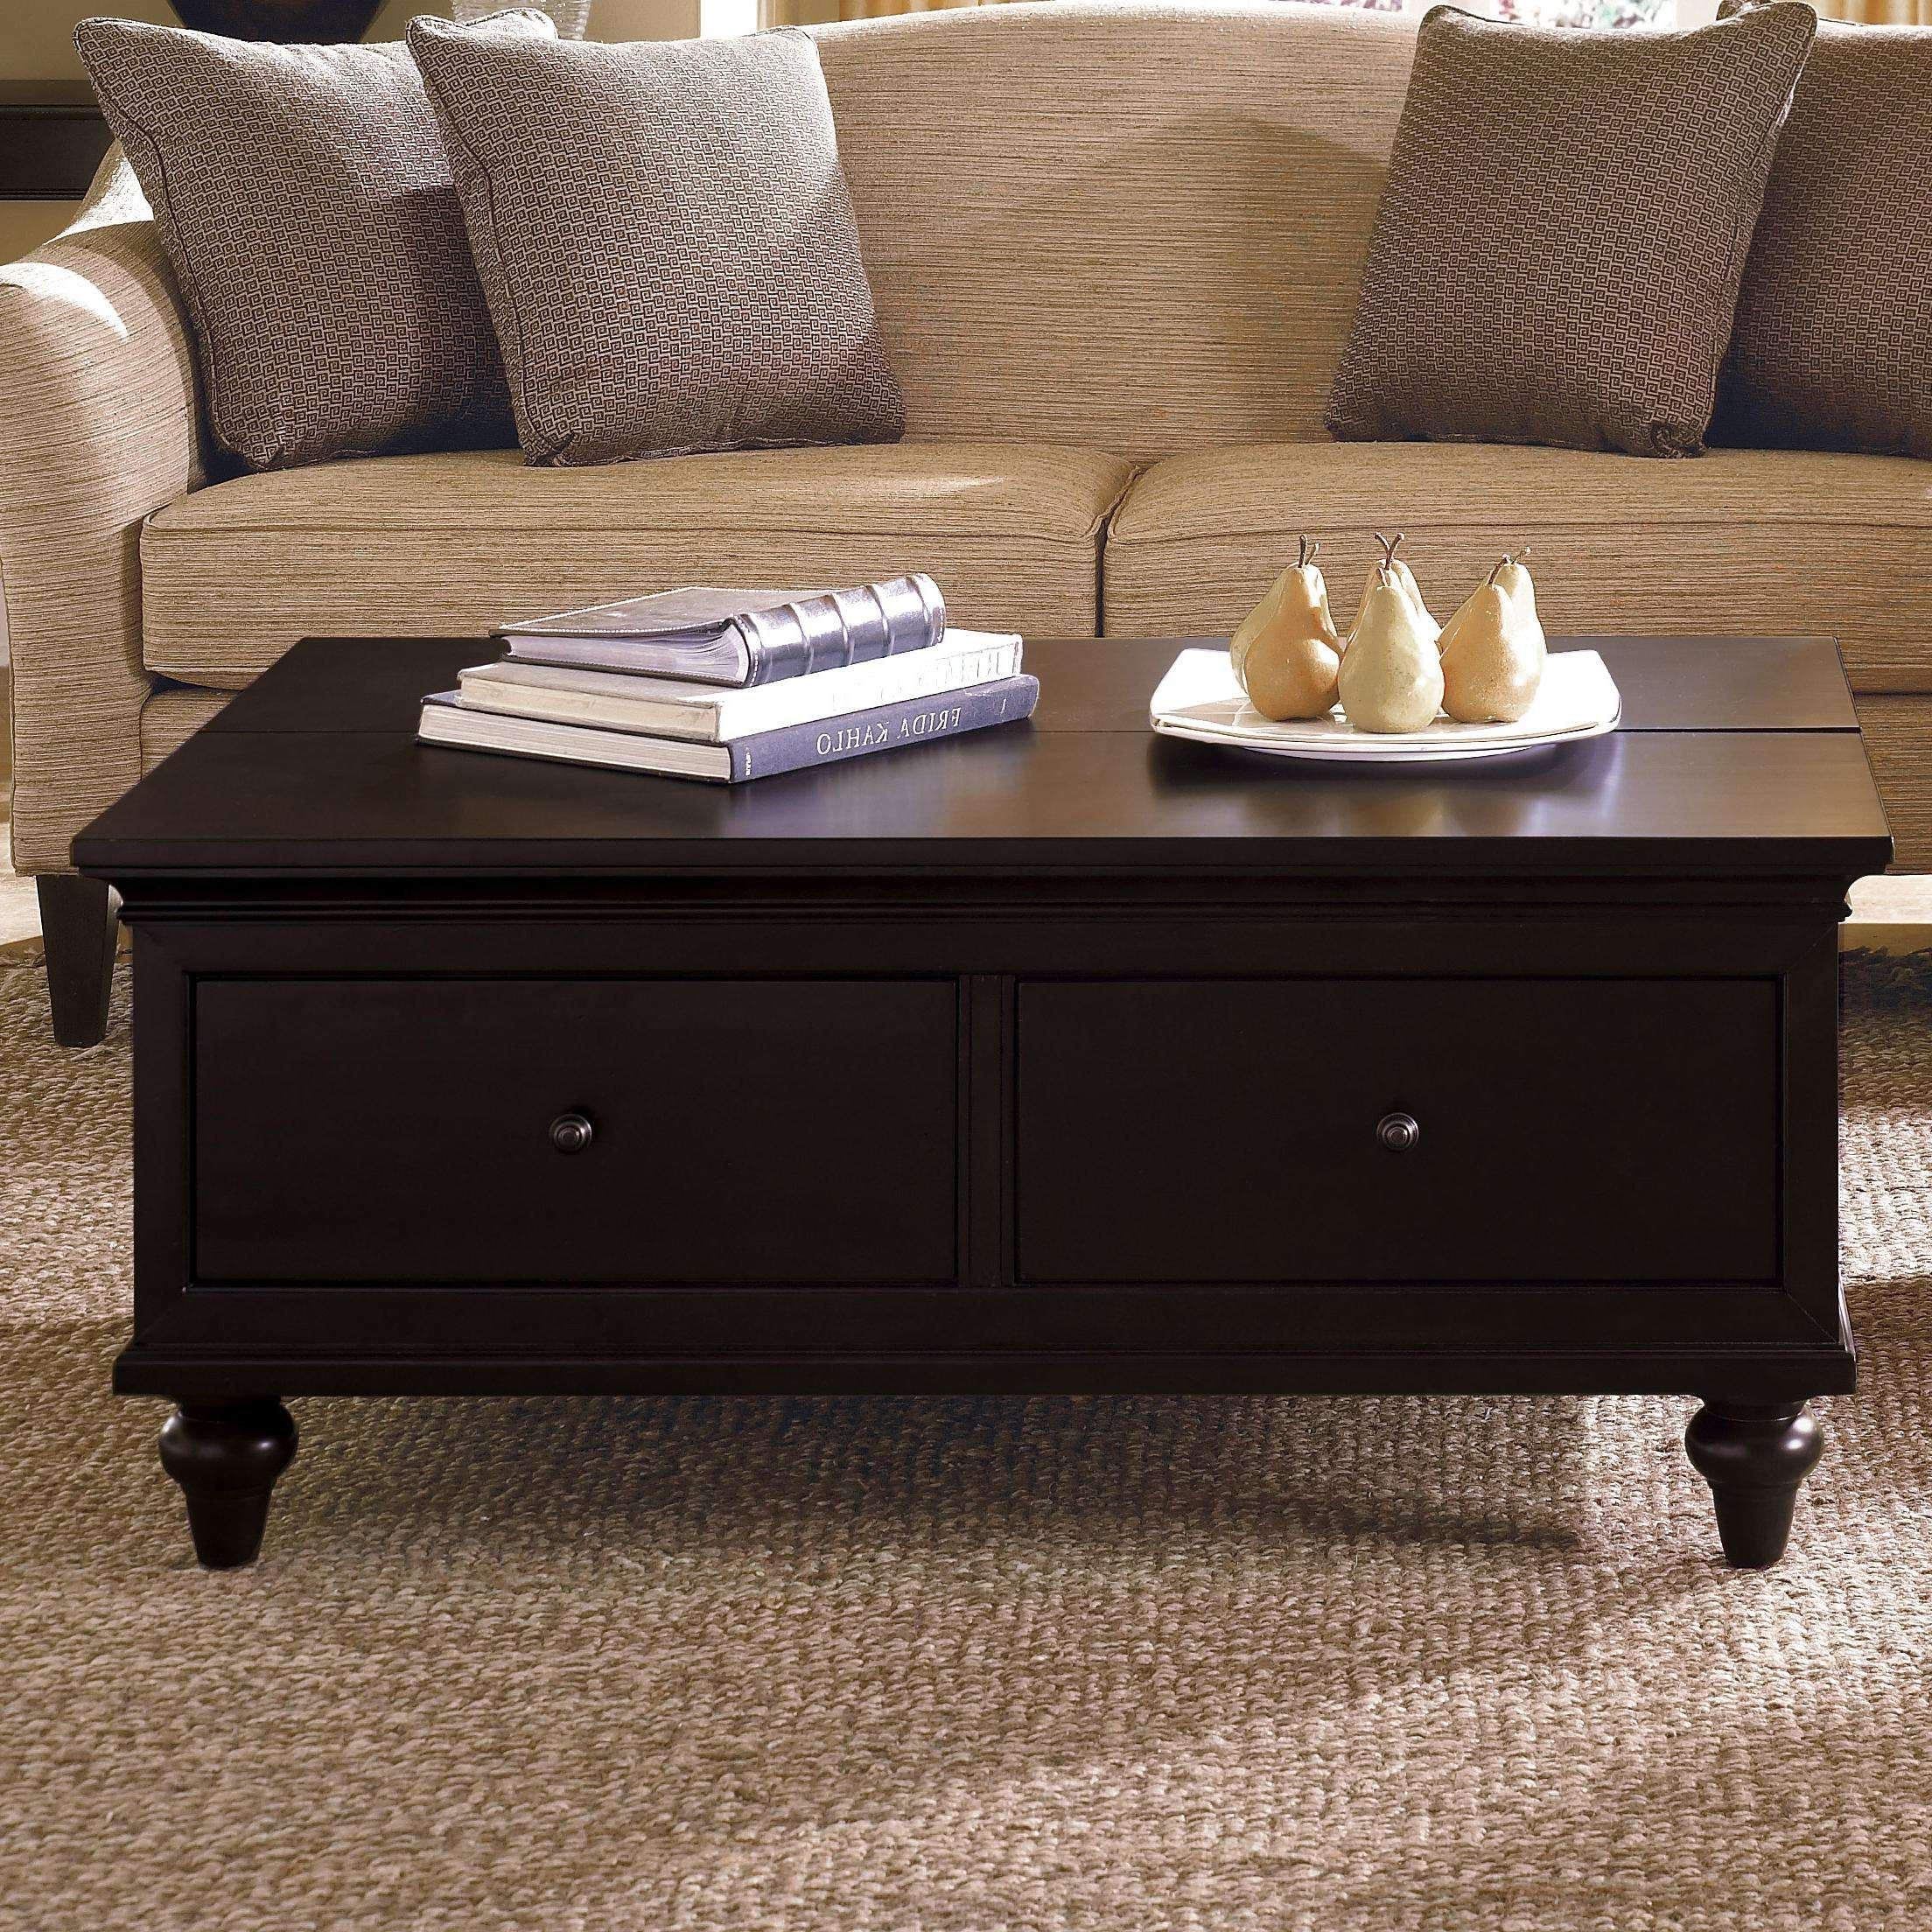 Favorite Square Coffee Tables With Drawers Pertaining To Large Square Coffee Tables With Drawers • Drawer Furniture (View 4 of 20)